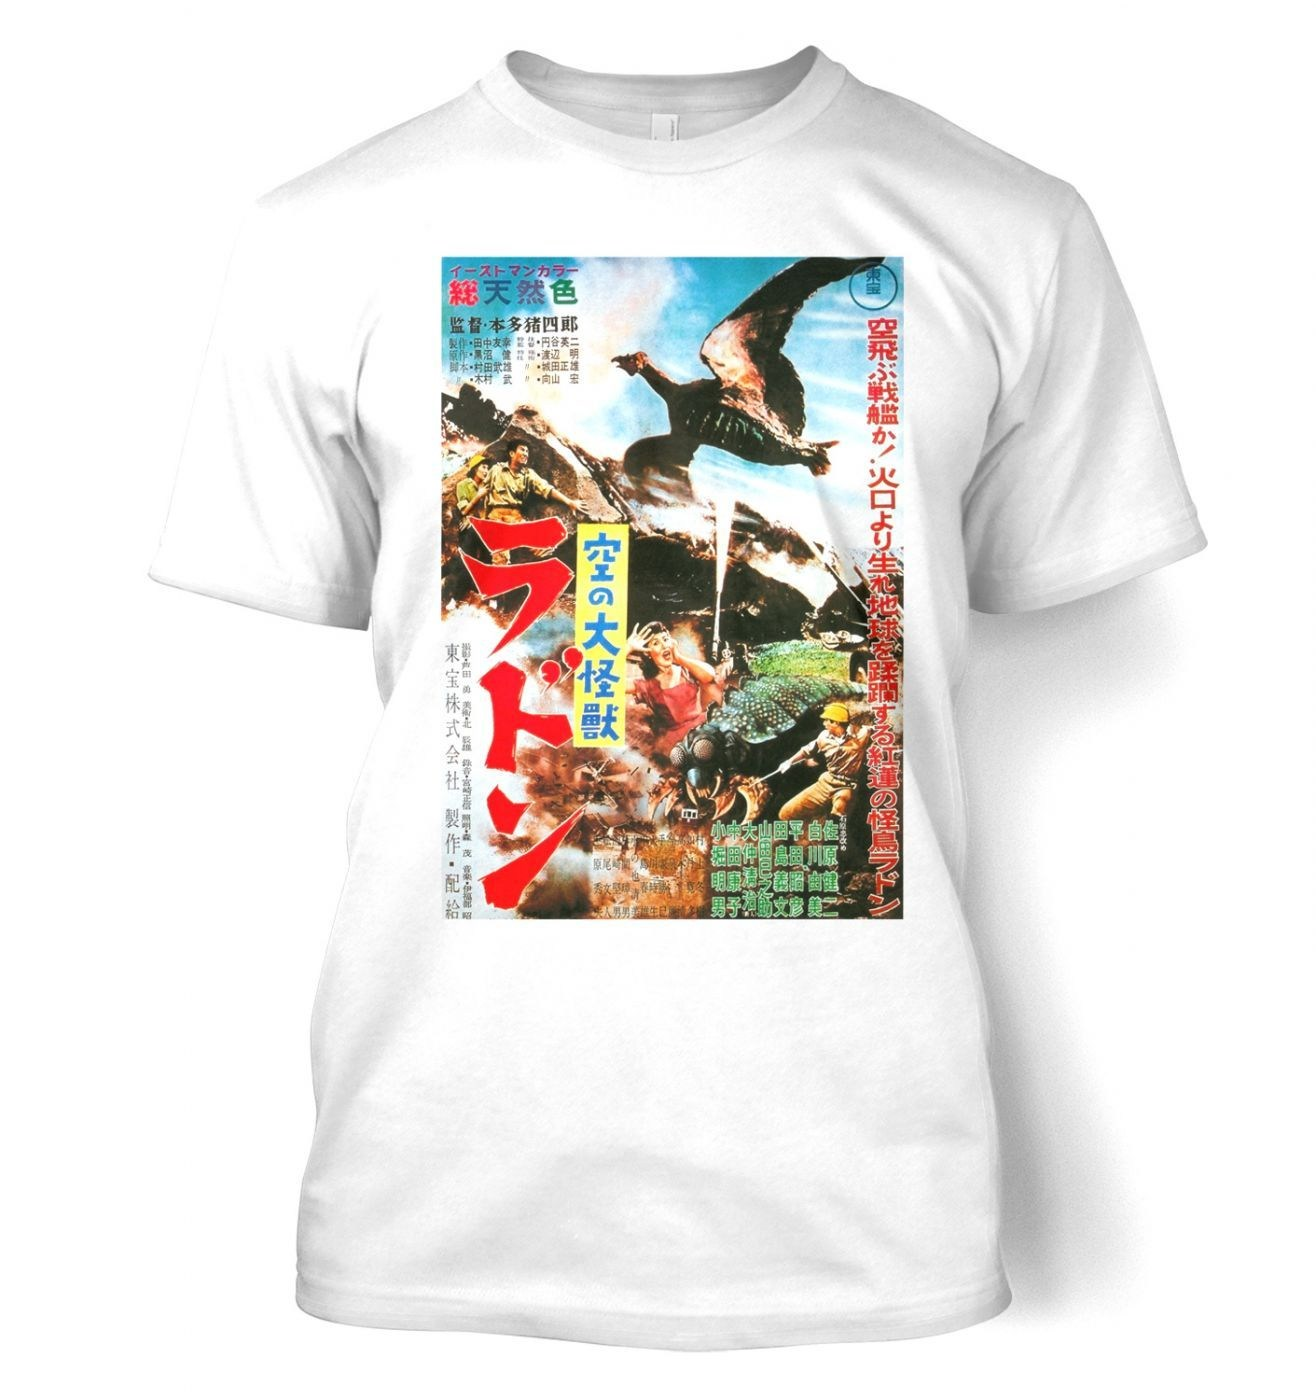 Rodan Flying Monster men's t-shirt